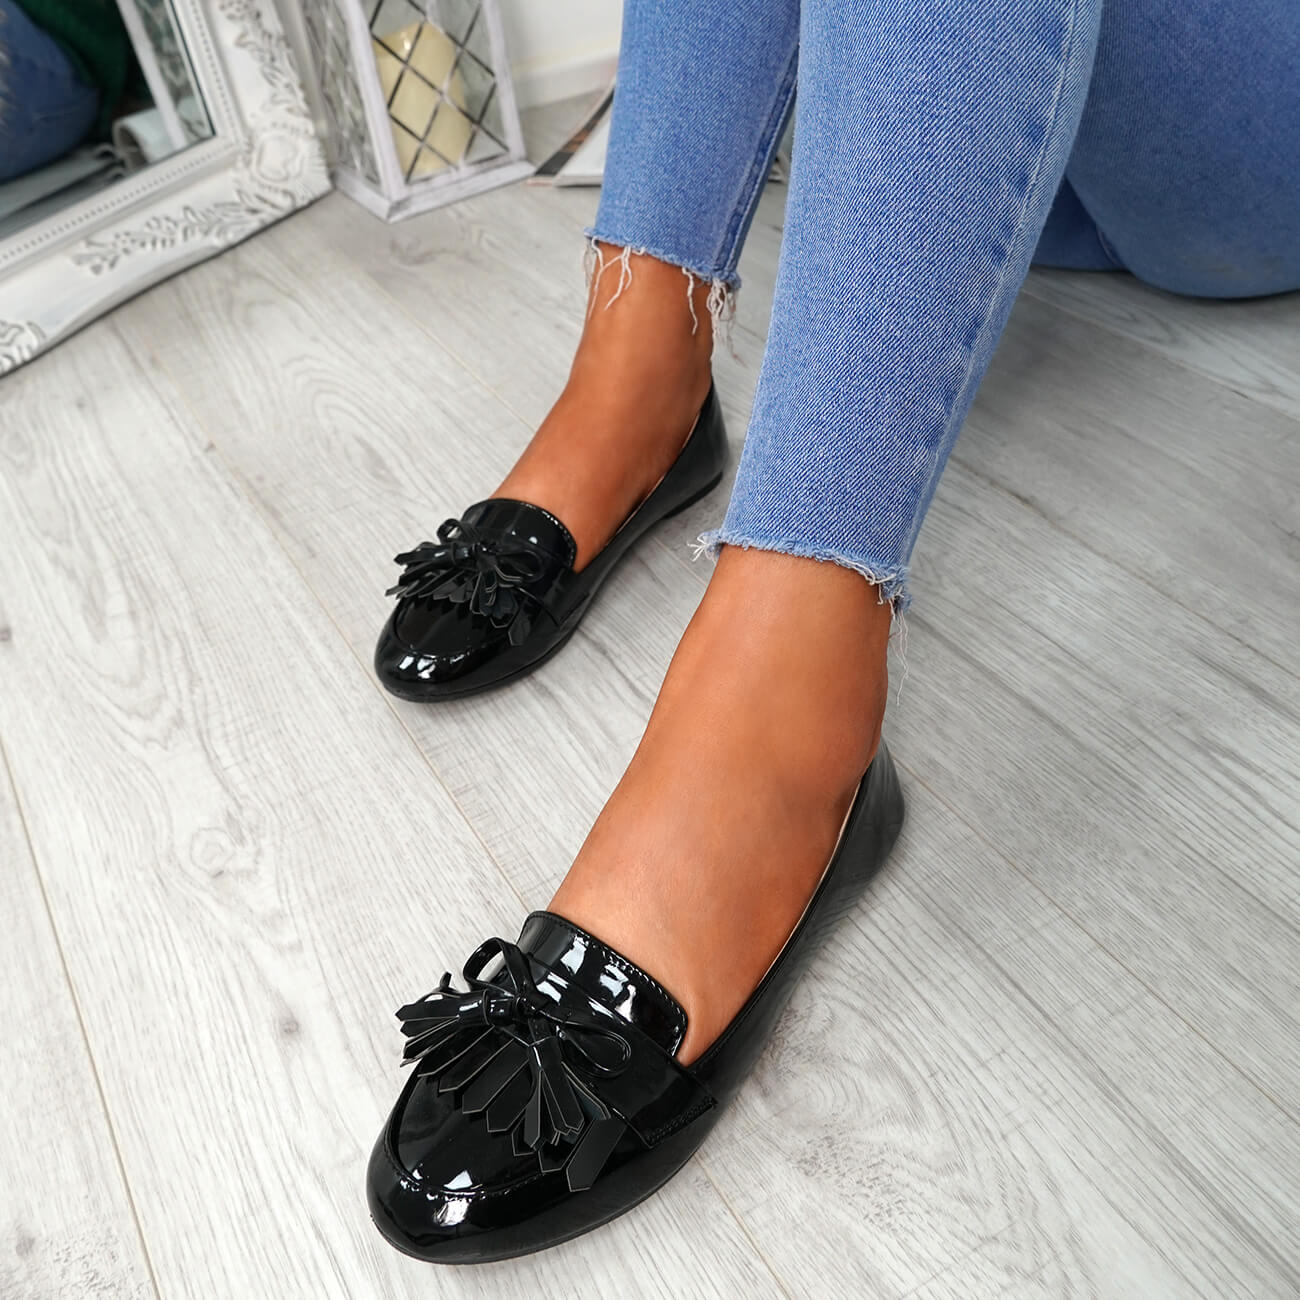 WOMENS-LADIES-FRINGE-BALLERINAS-SLIP-ON-FLAT-DOLLY-PUMPS-CASUAL-SMART-SHOES-SIZE thumbnail 9